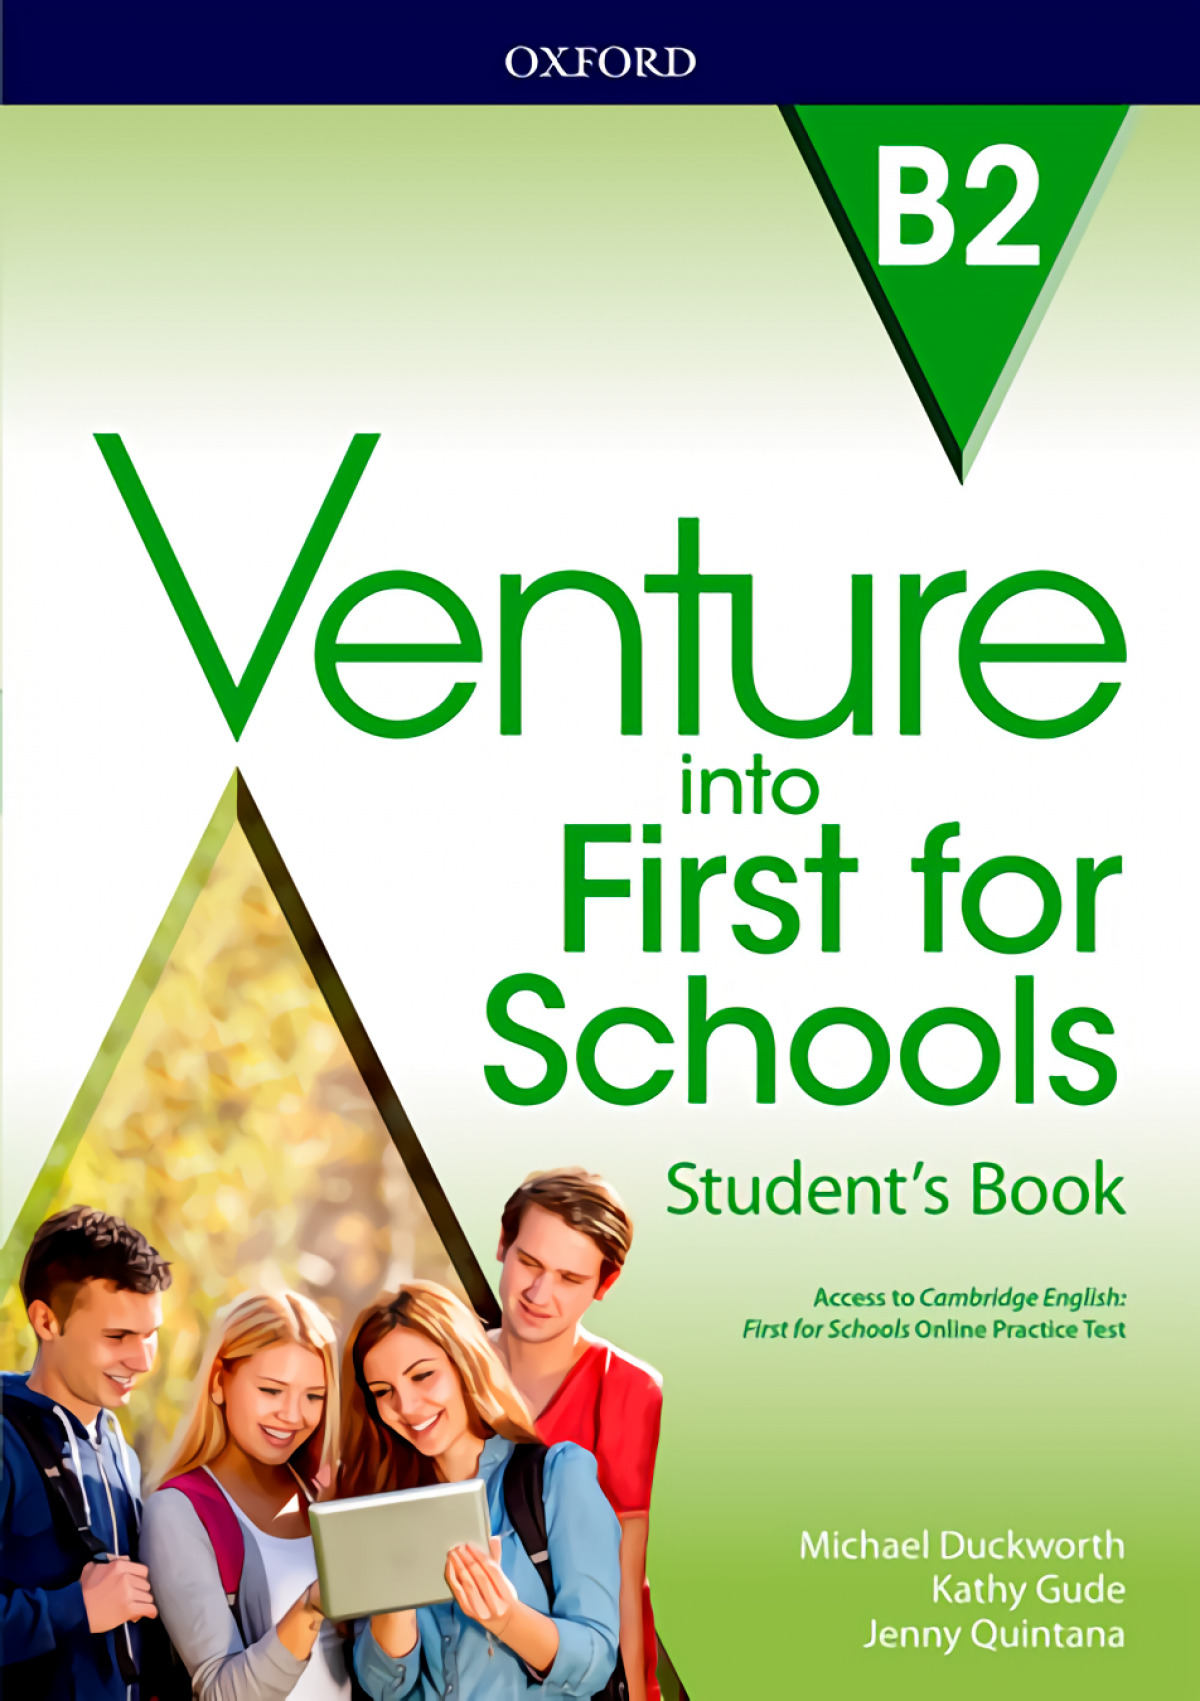 (17).VENTURE INTO FIRST STUDENT BOOK